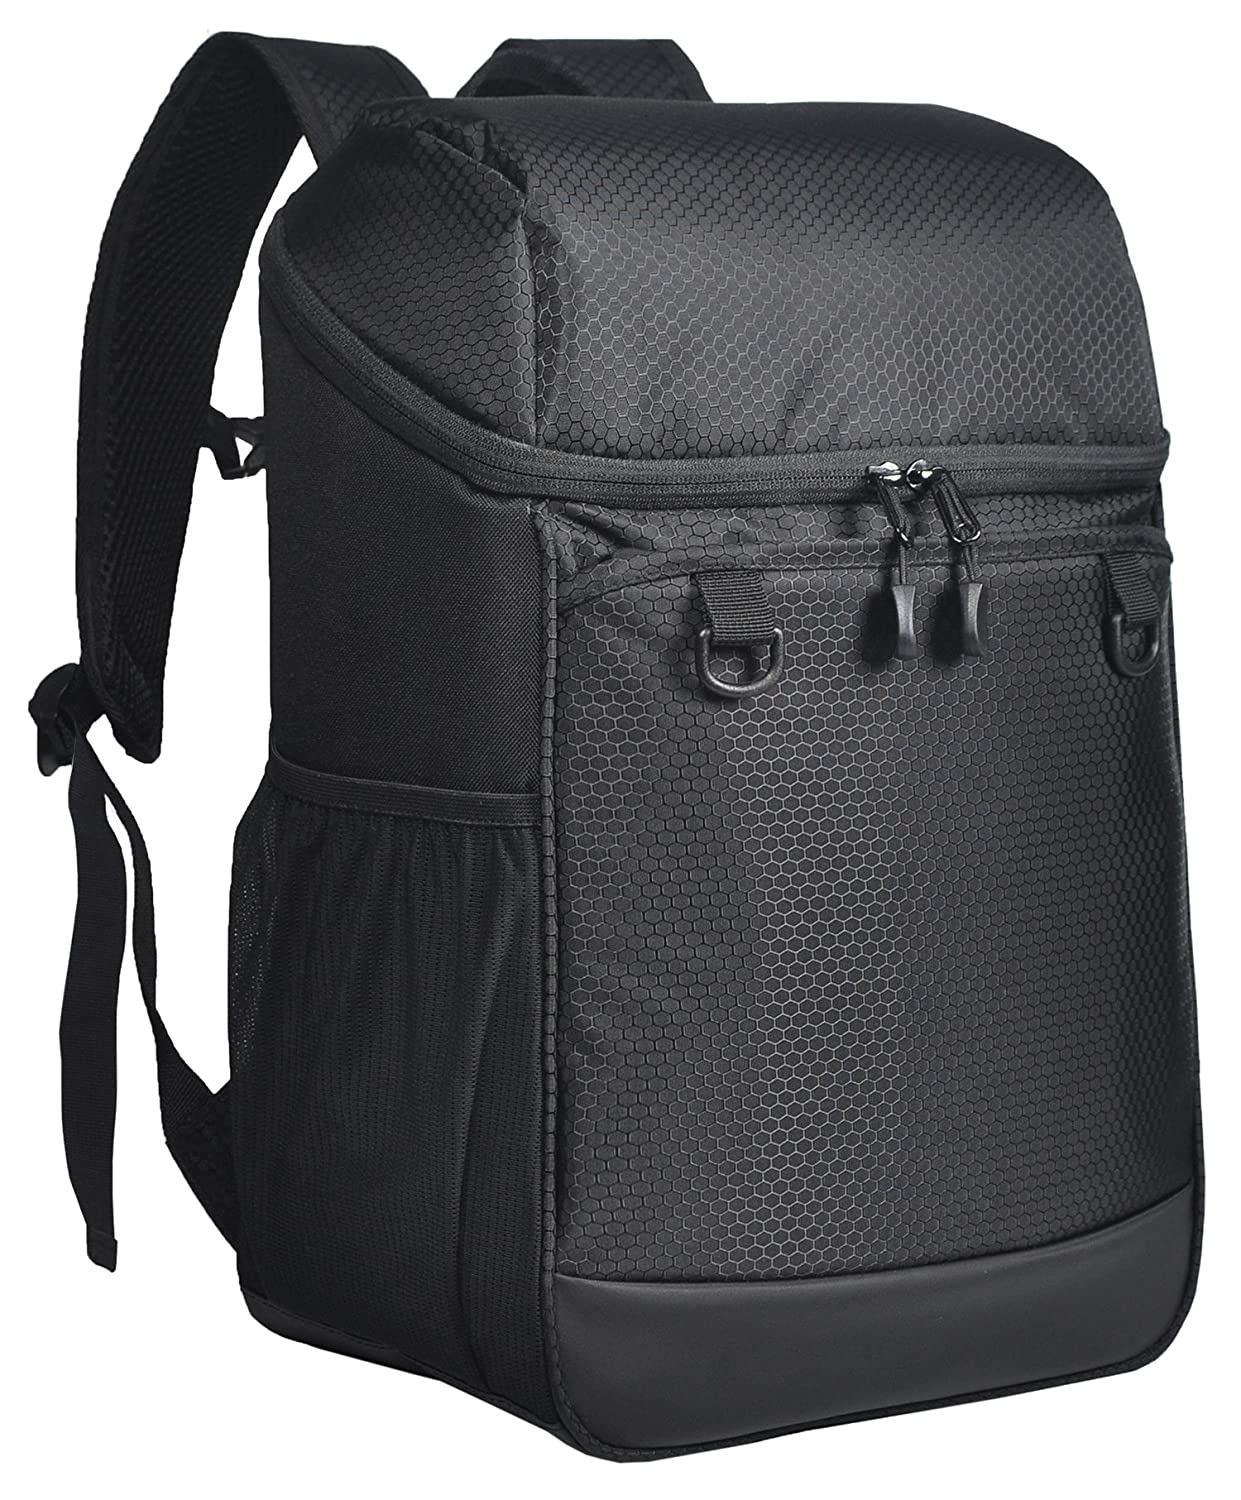 3412c710bd58 MIER Leakproof Backpack Cooler Insulated Lunch Backpack with iPad Tablet  Pocket for Men and Women to Work